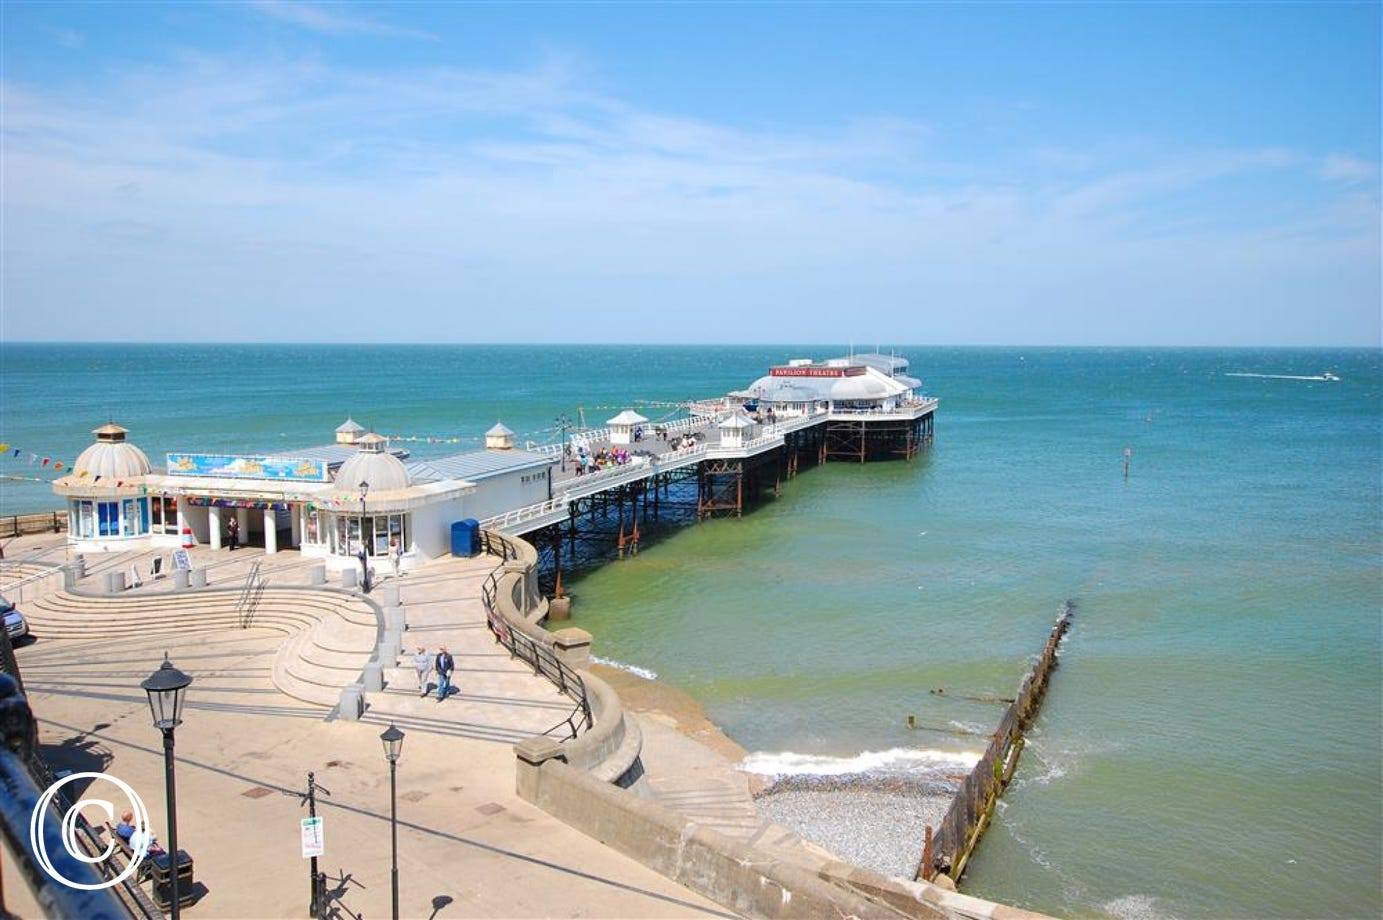 Stunning shot of Cromer pier on a beautiful clear day.